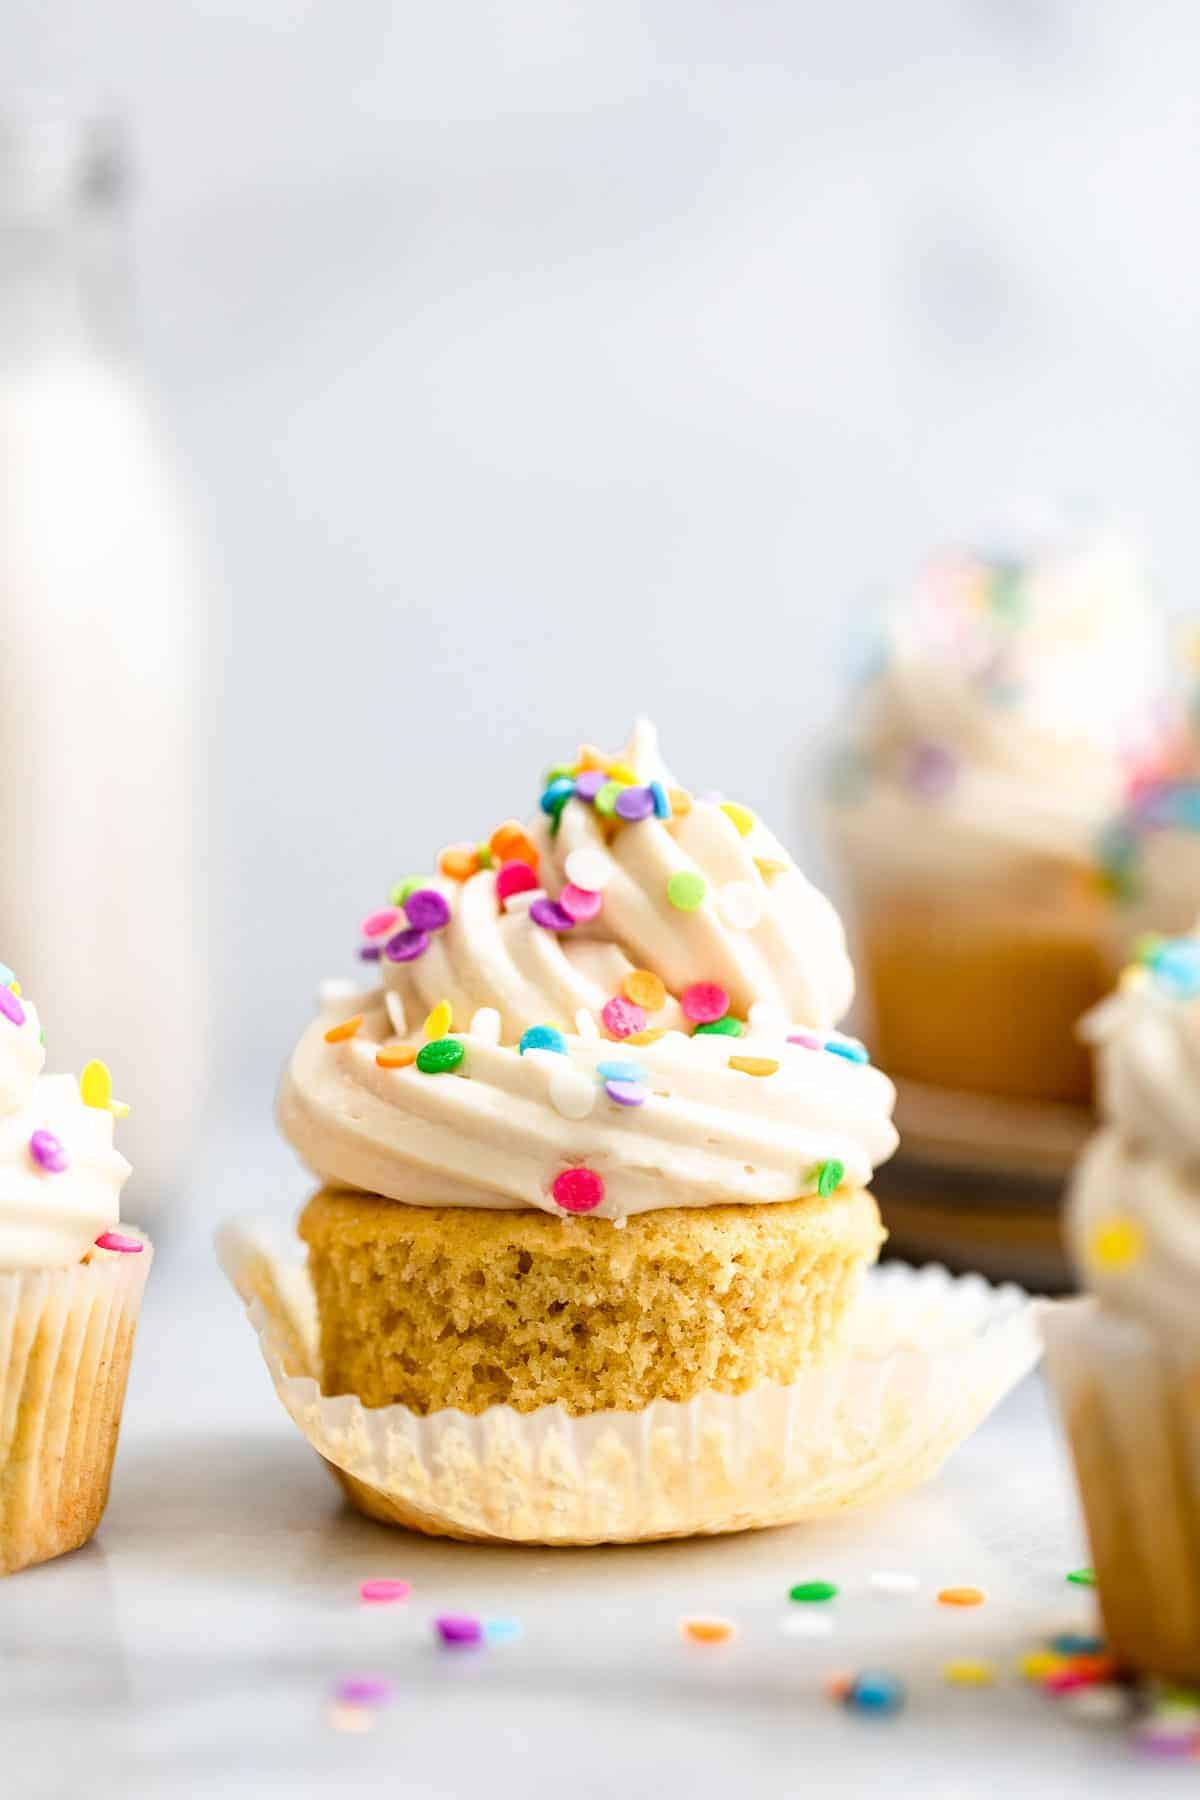 Gluten free vanilla cupcakes with rainbow sprinkles on top with milk in the back.